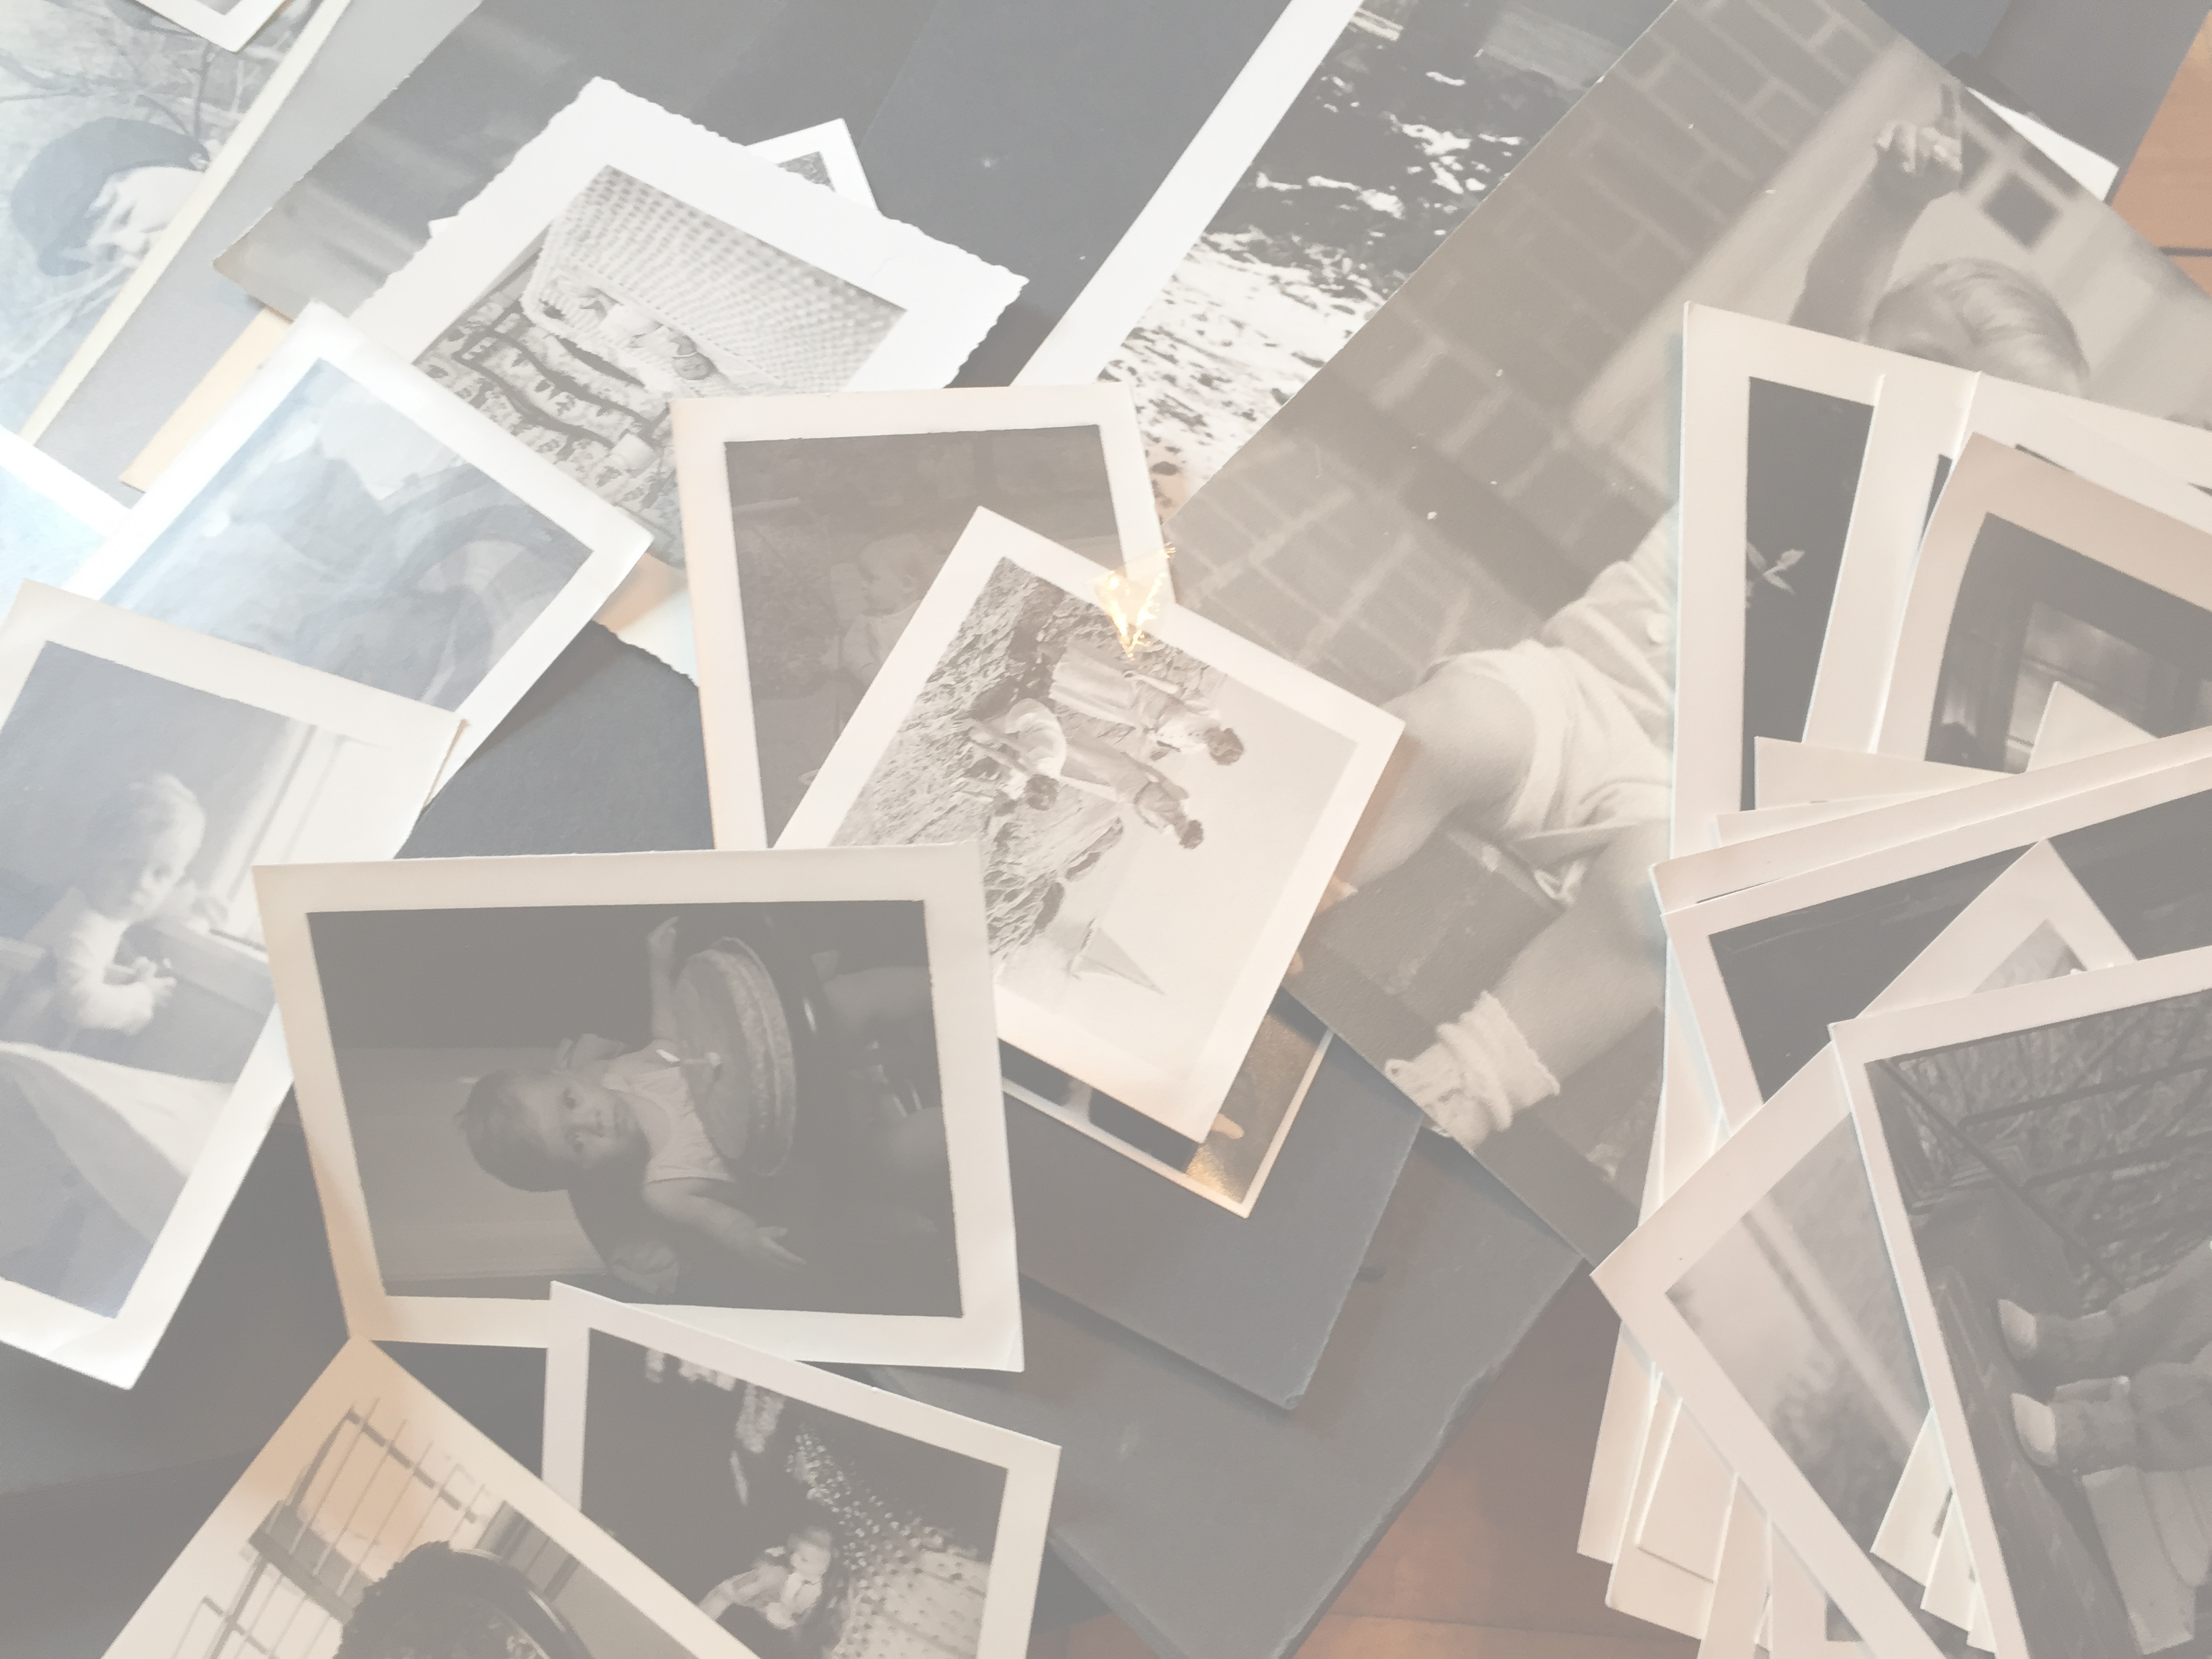 vintage photographs tossed on a table with filter